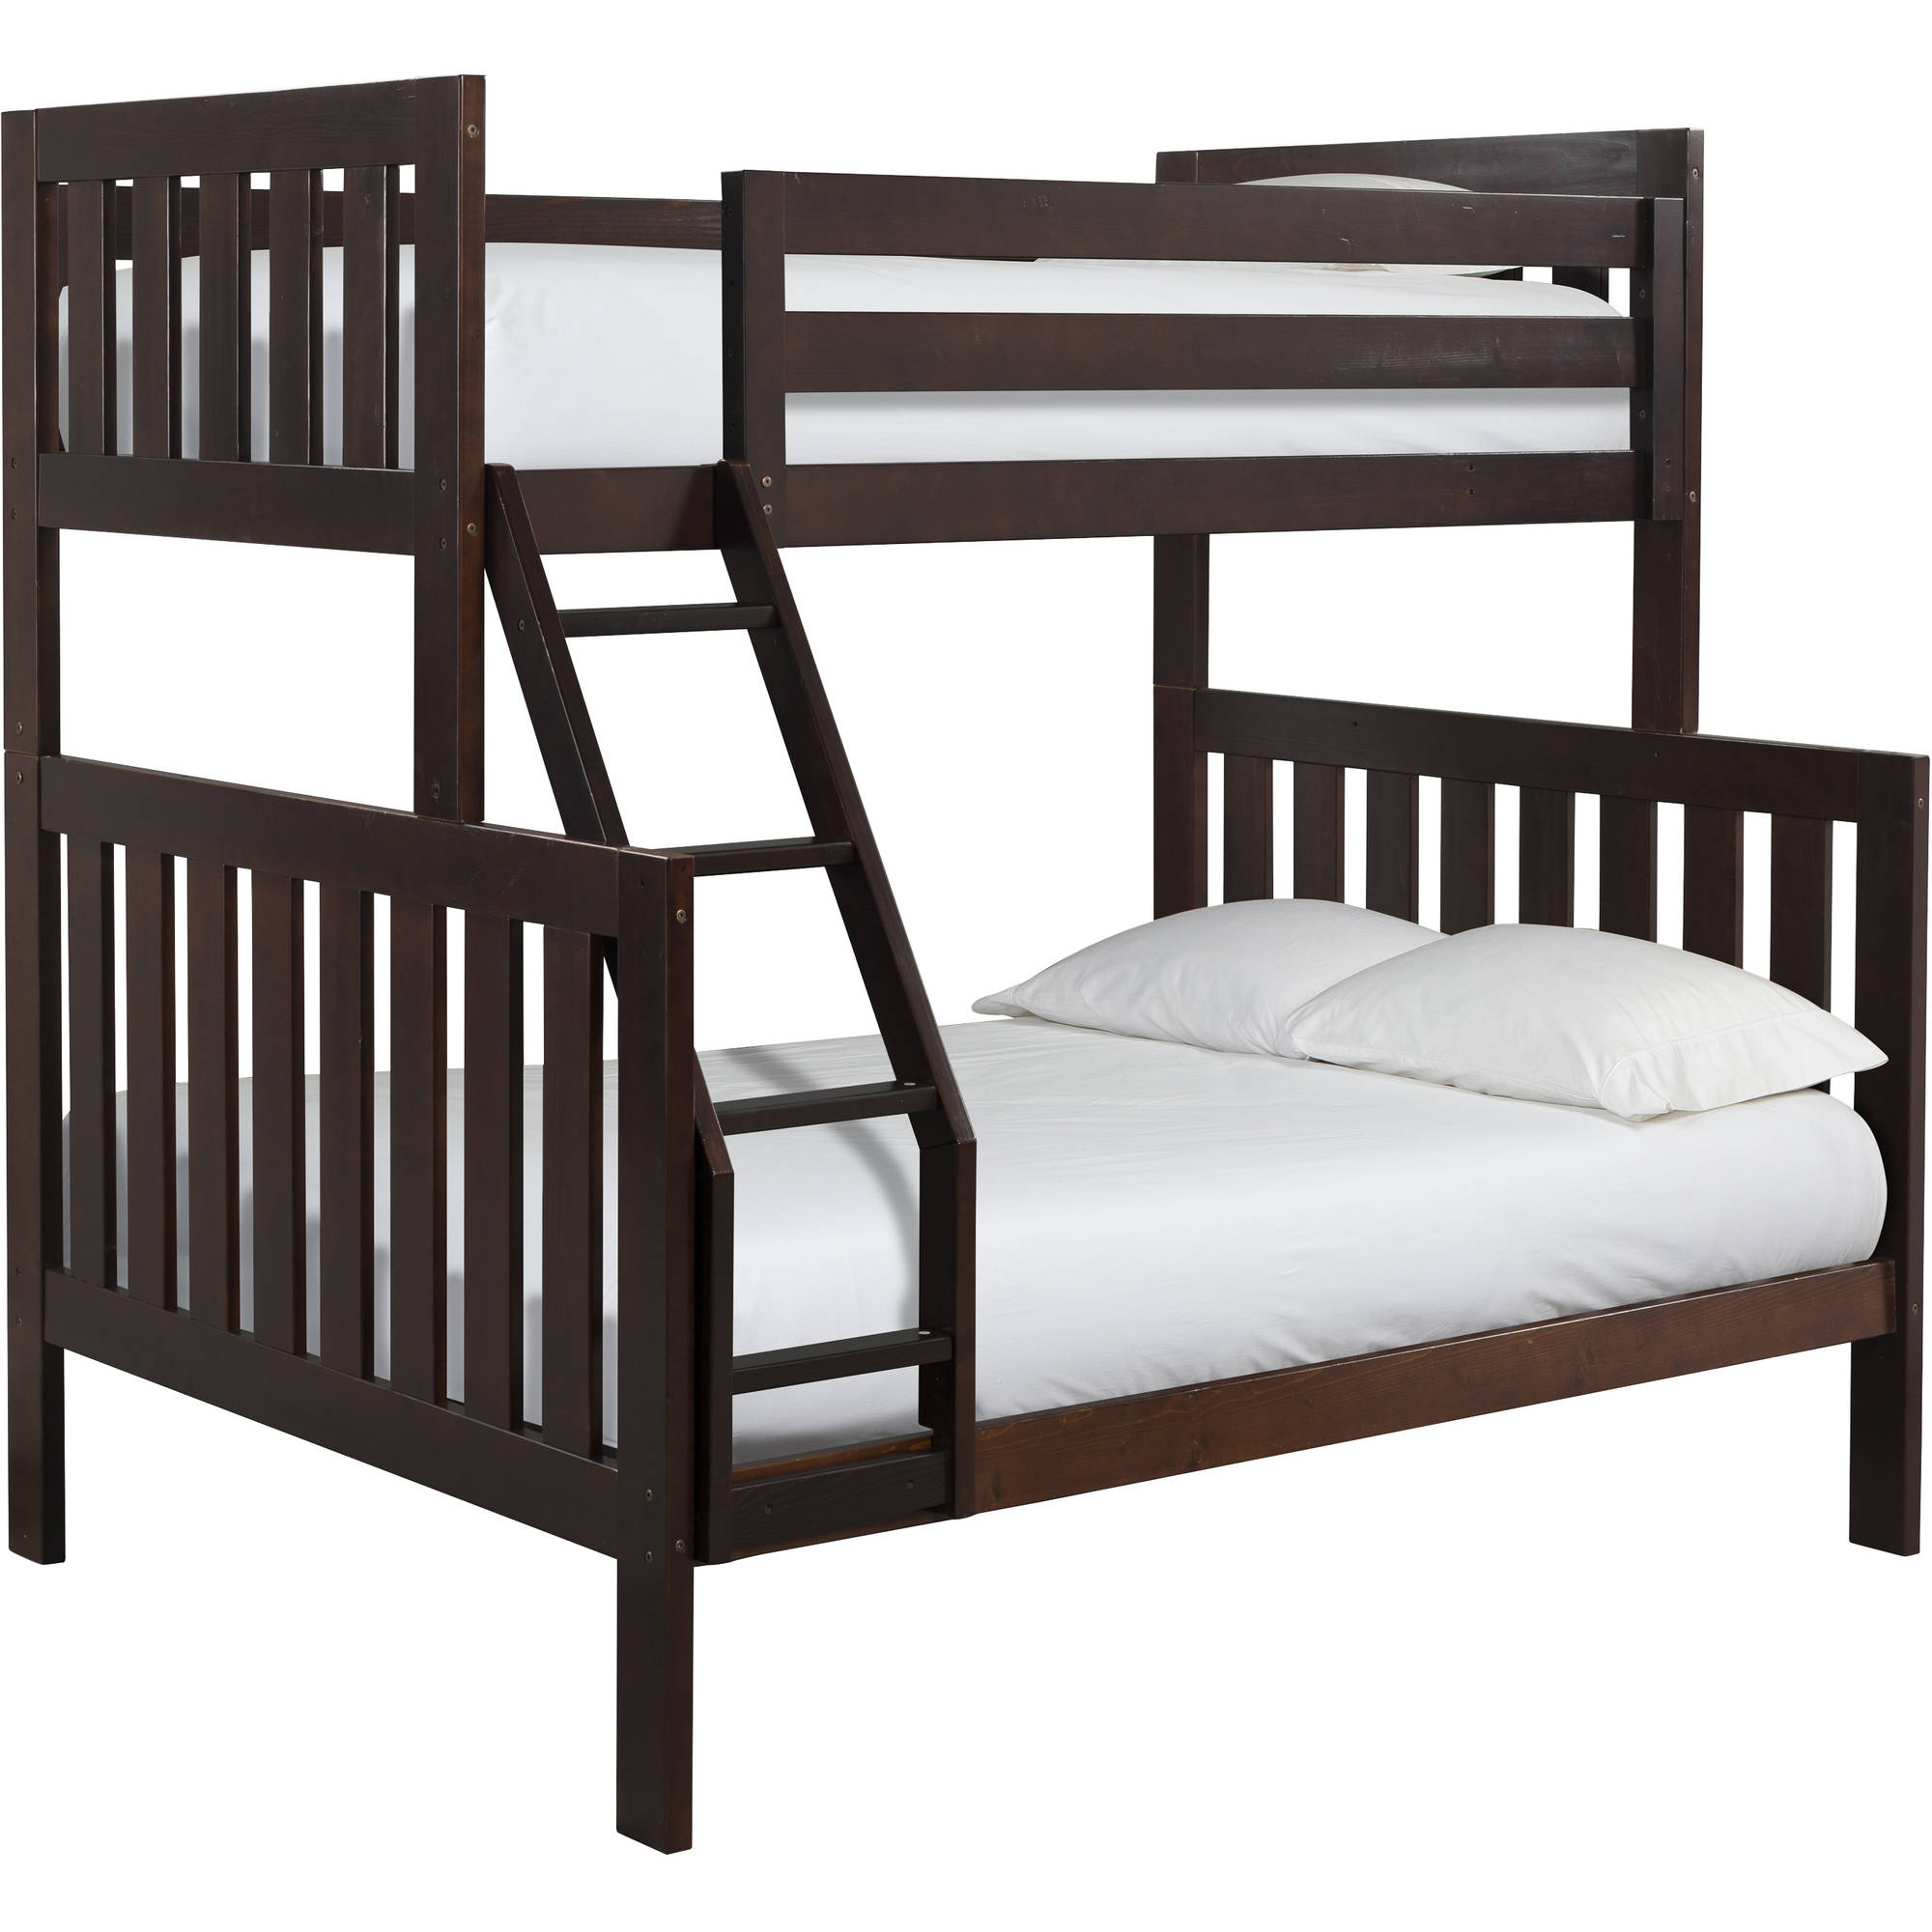 Canwood Lakecrest Twin Over Full Bunk Bed, Espresso